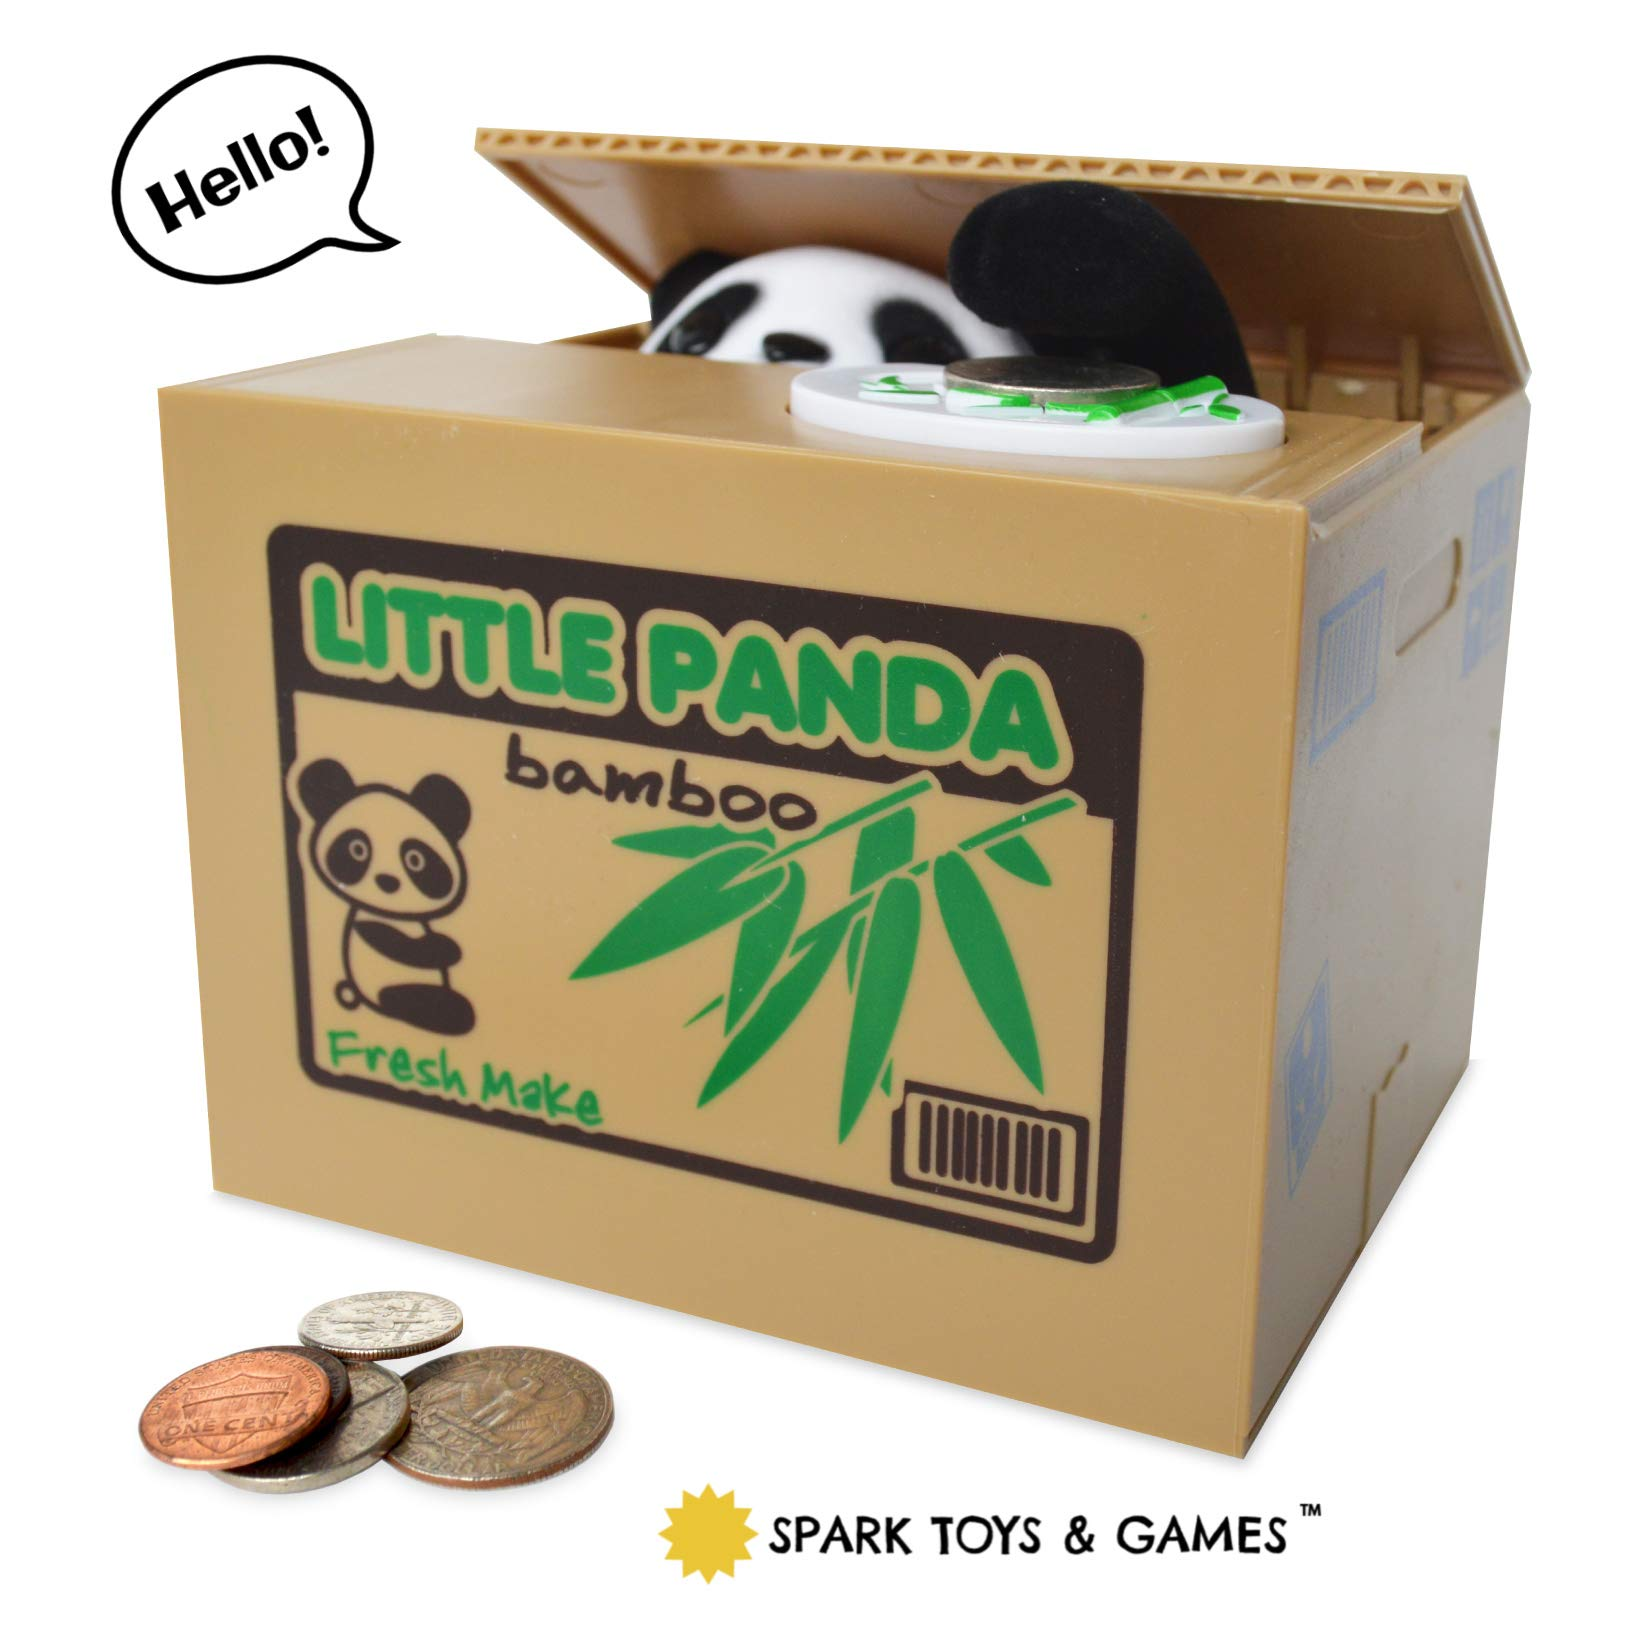 Panda Piggy Bank for Kids - Coin Stealing Mechanical Piggy Bank has a Cute Little Panda Bear inside the Bamboo Money Box who Pops Up and Steals Coins like Magic - Fun for Kids of All Ages by Spark Toys & Games